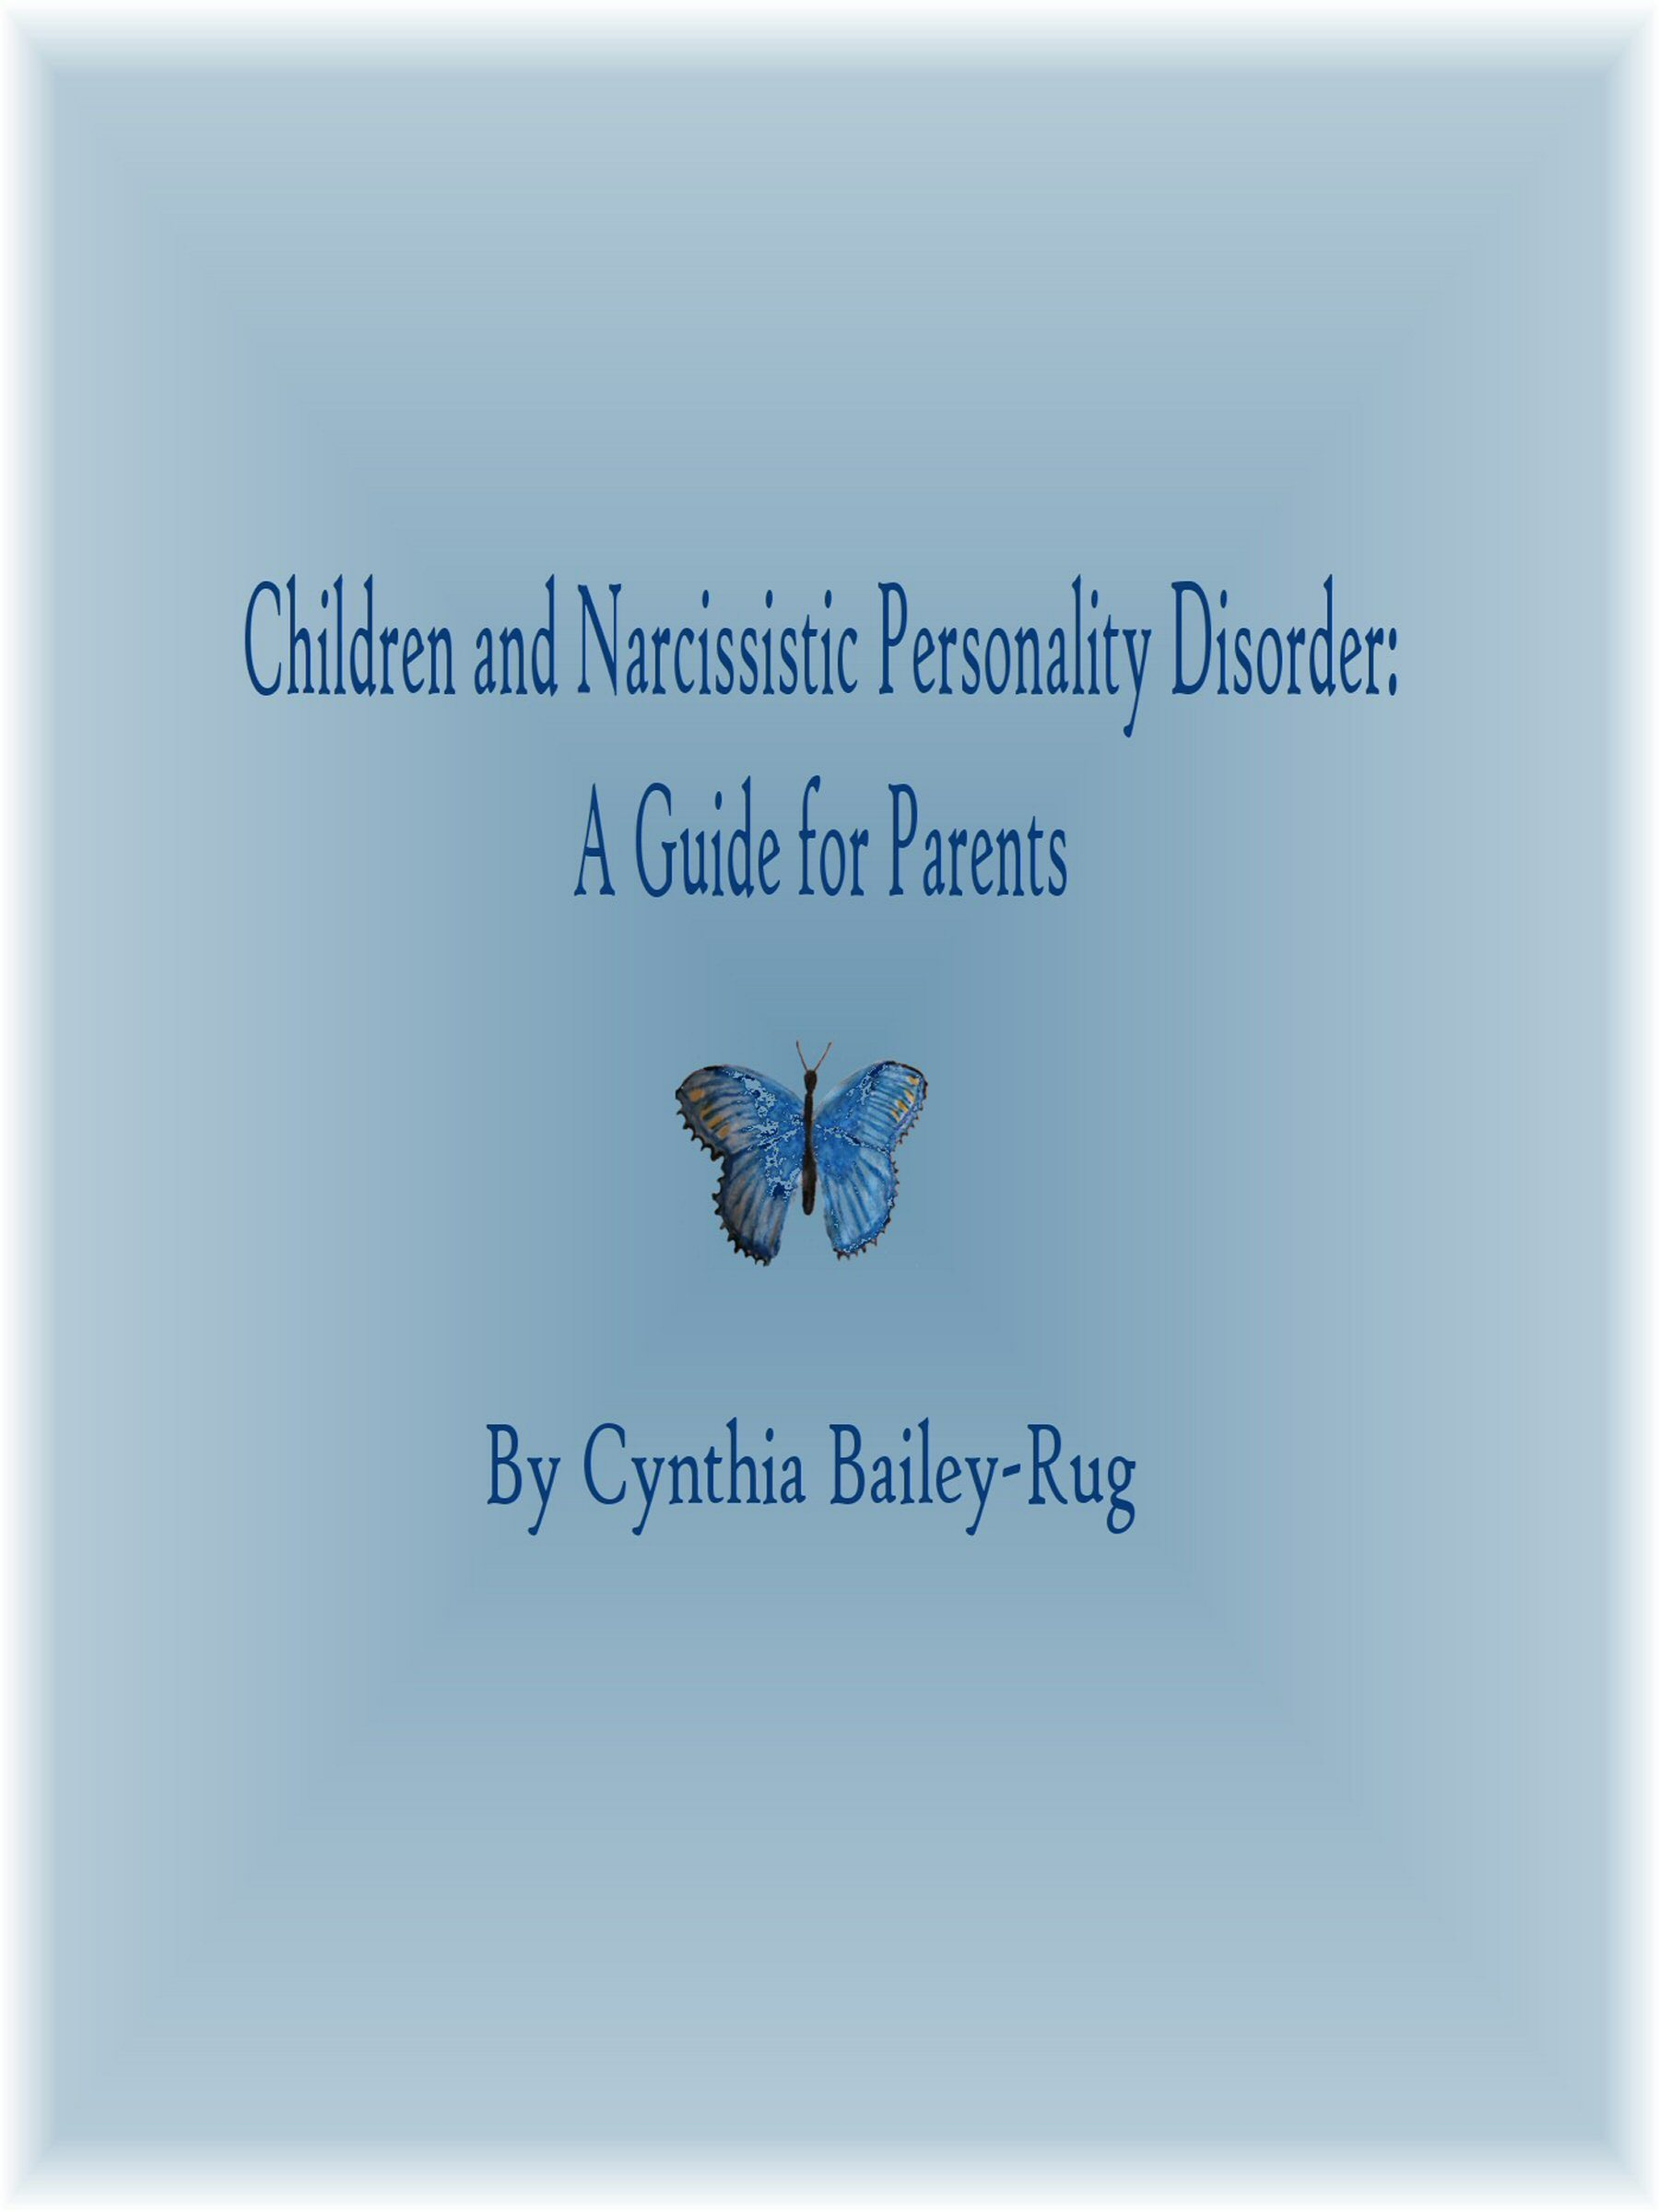 Children and Narcissistic Personality Disorder: A Guide for Parents Cynthia Bailey-Rug